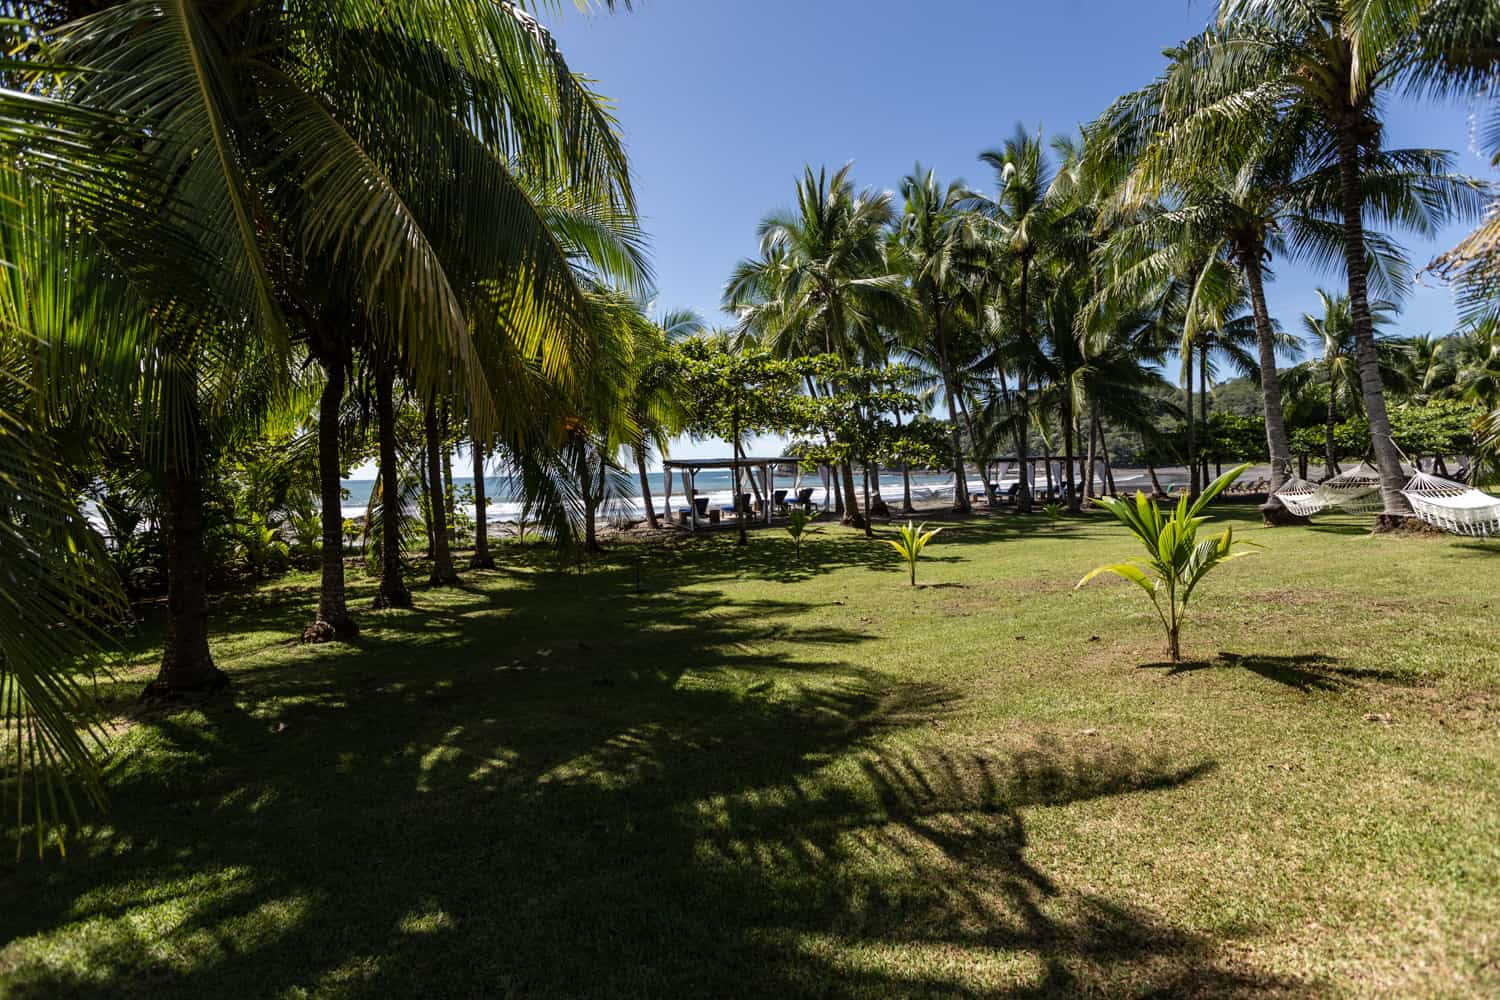 Garden area by beach lined with palm trees for wedding ceremonies.